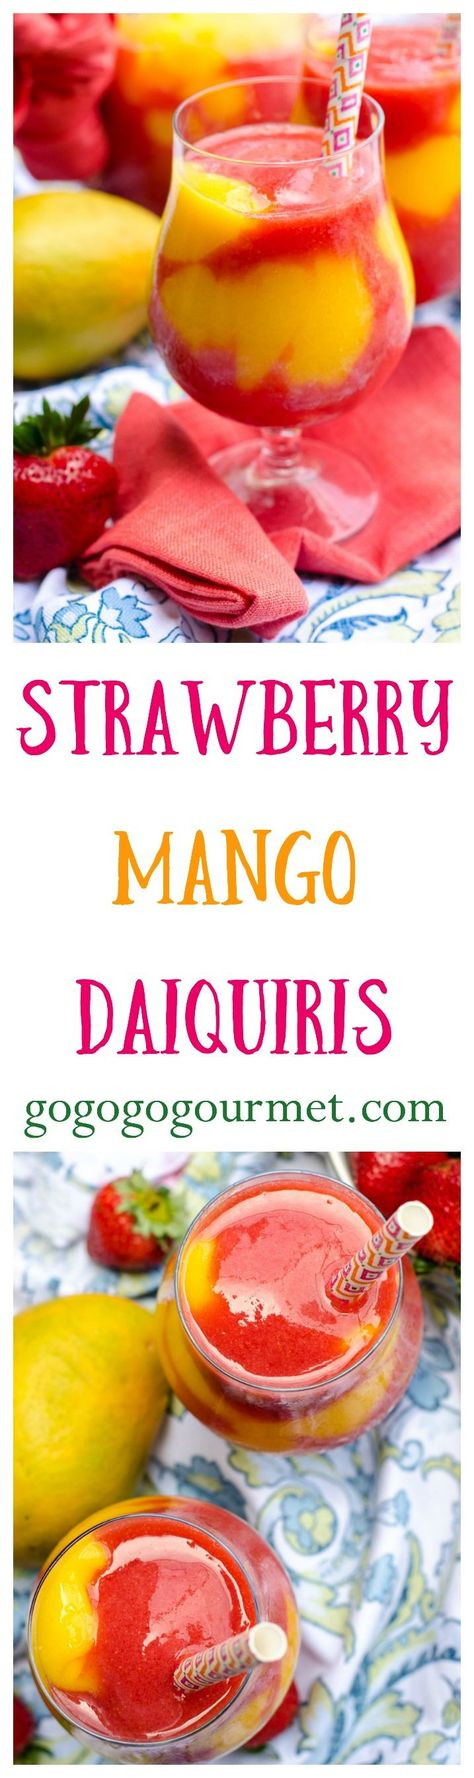 These Strawberry Mango Daiquiris are better than ANY concentrated mix- and just look at all that COLOR!   Go Go Go Gourmet @Go Go Go Gourmet